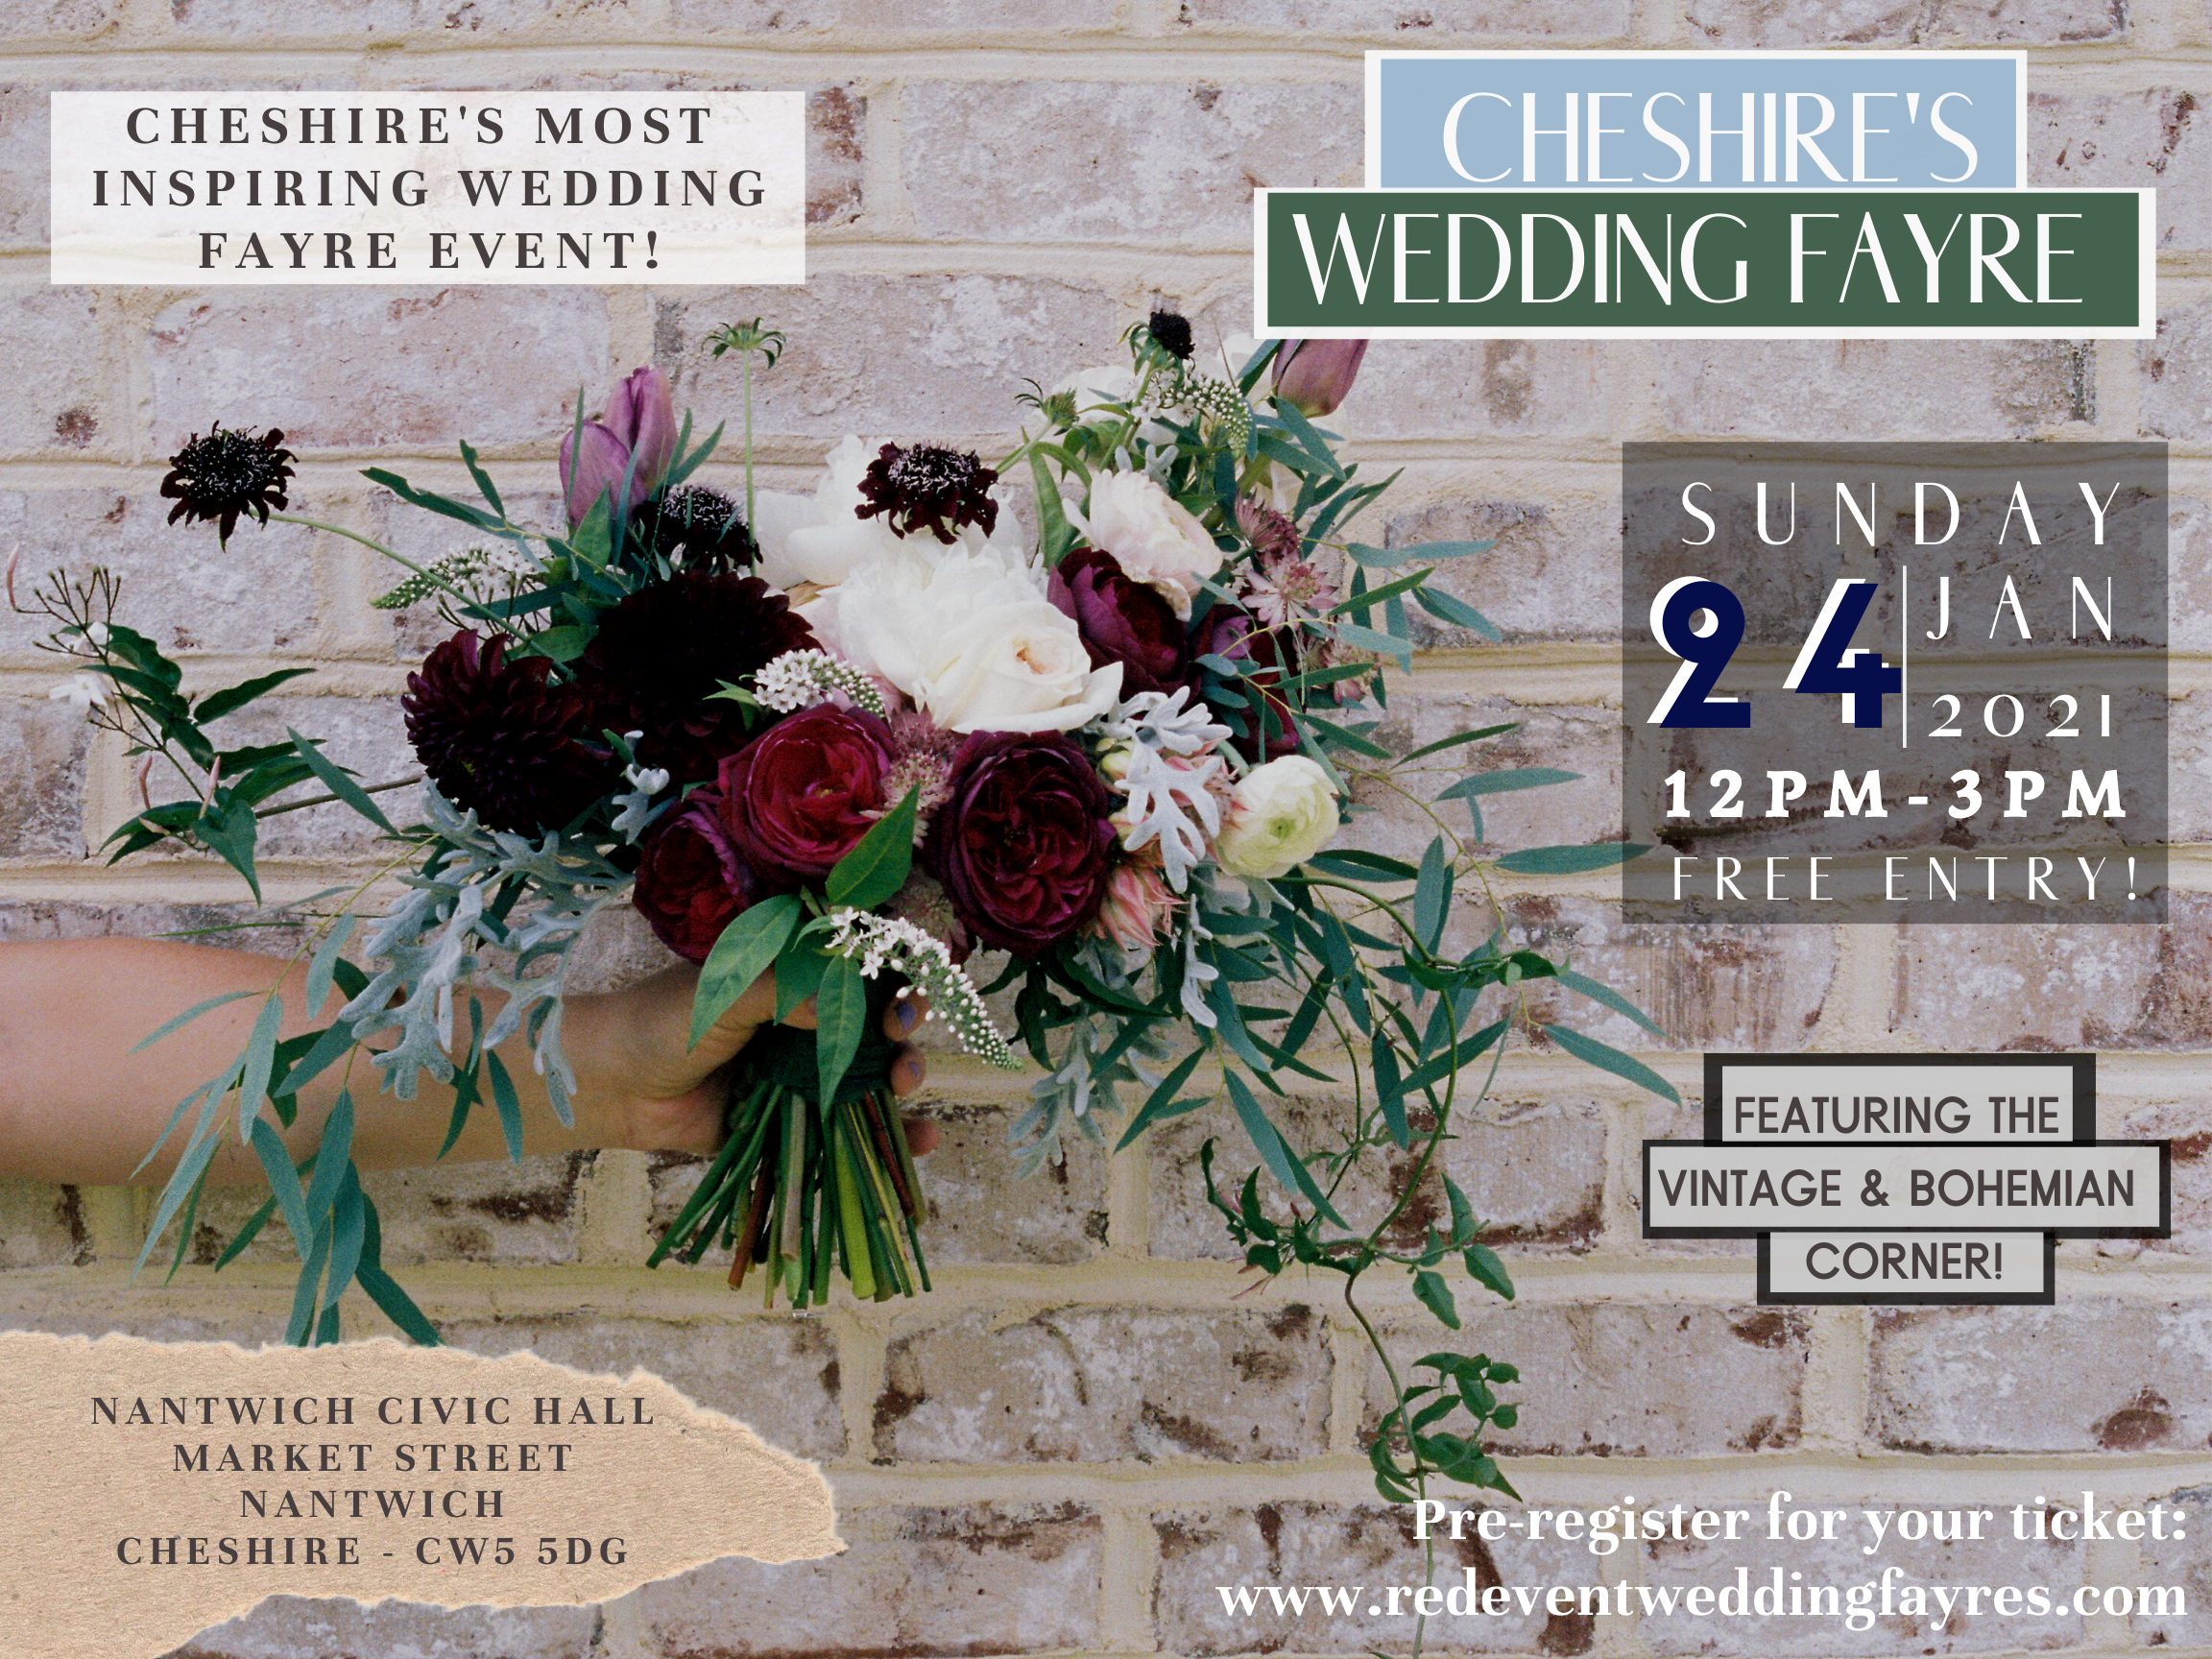 Cheshire's Wedding Fair featuring the Bohemian & Vintage Corner